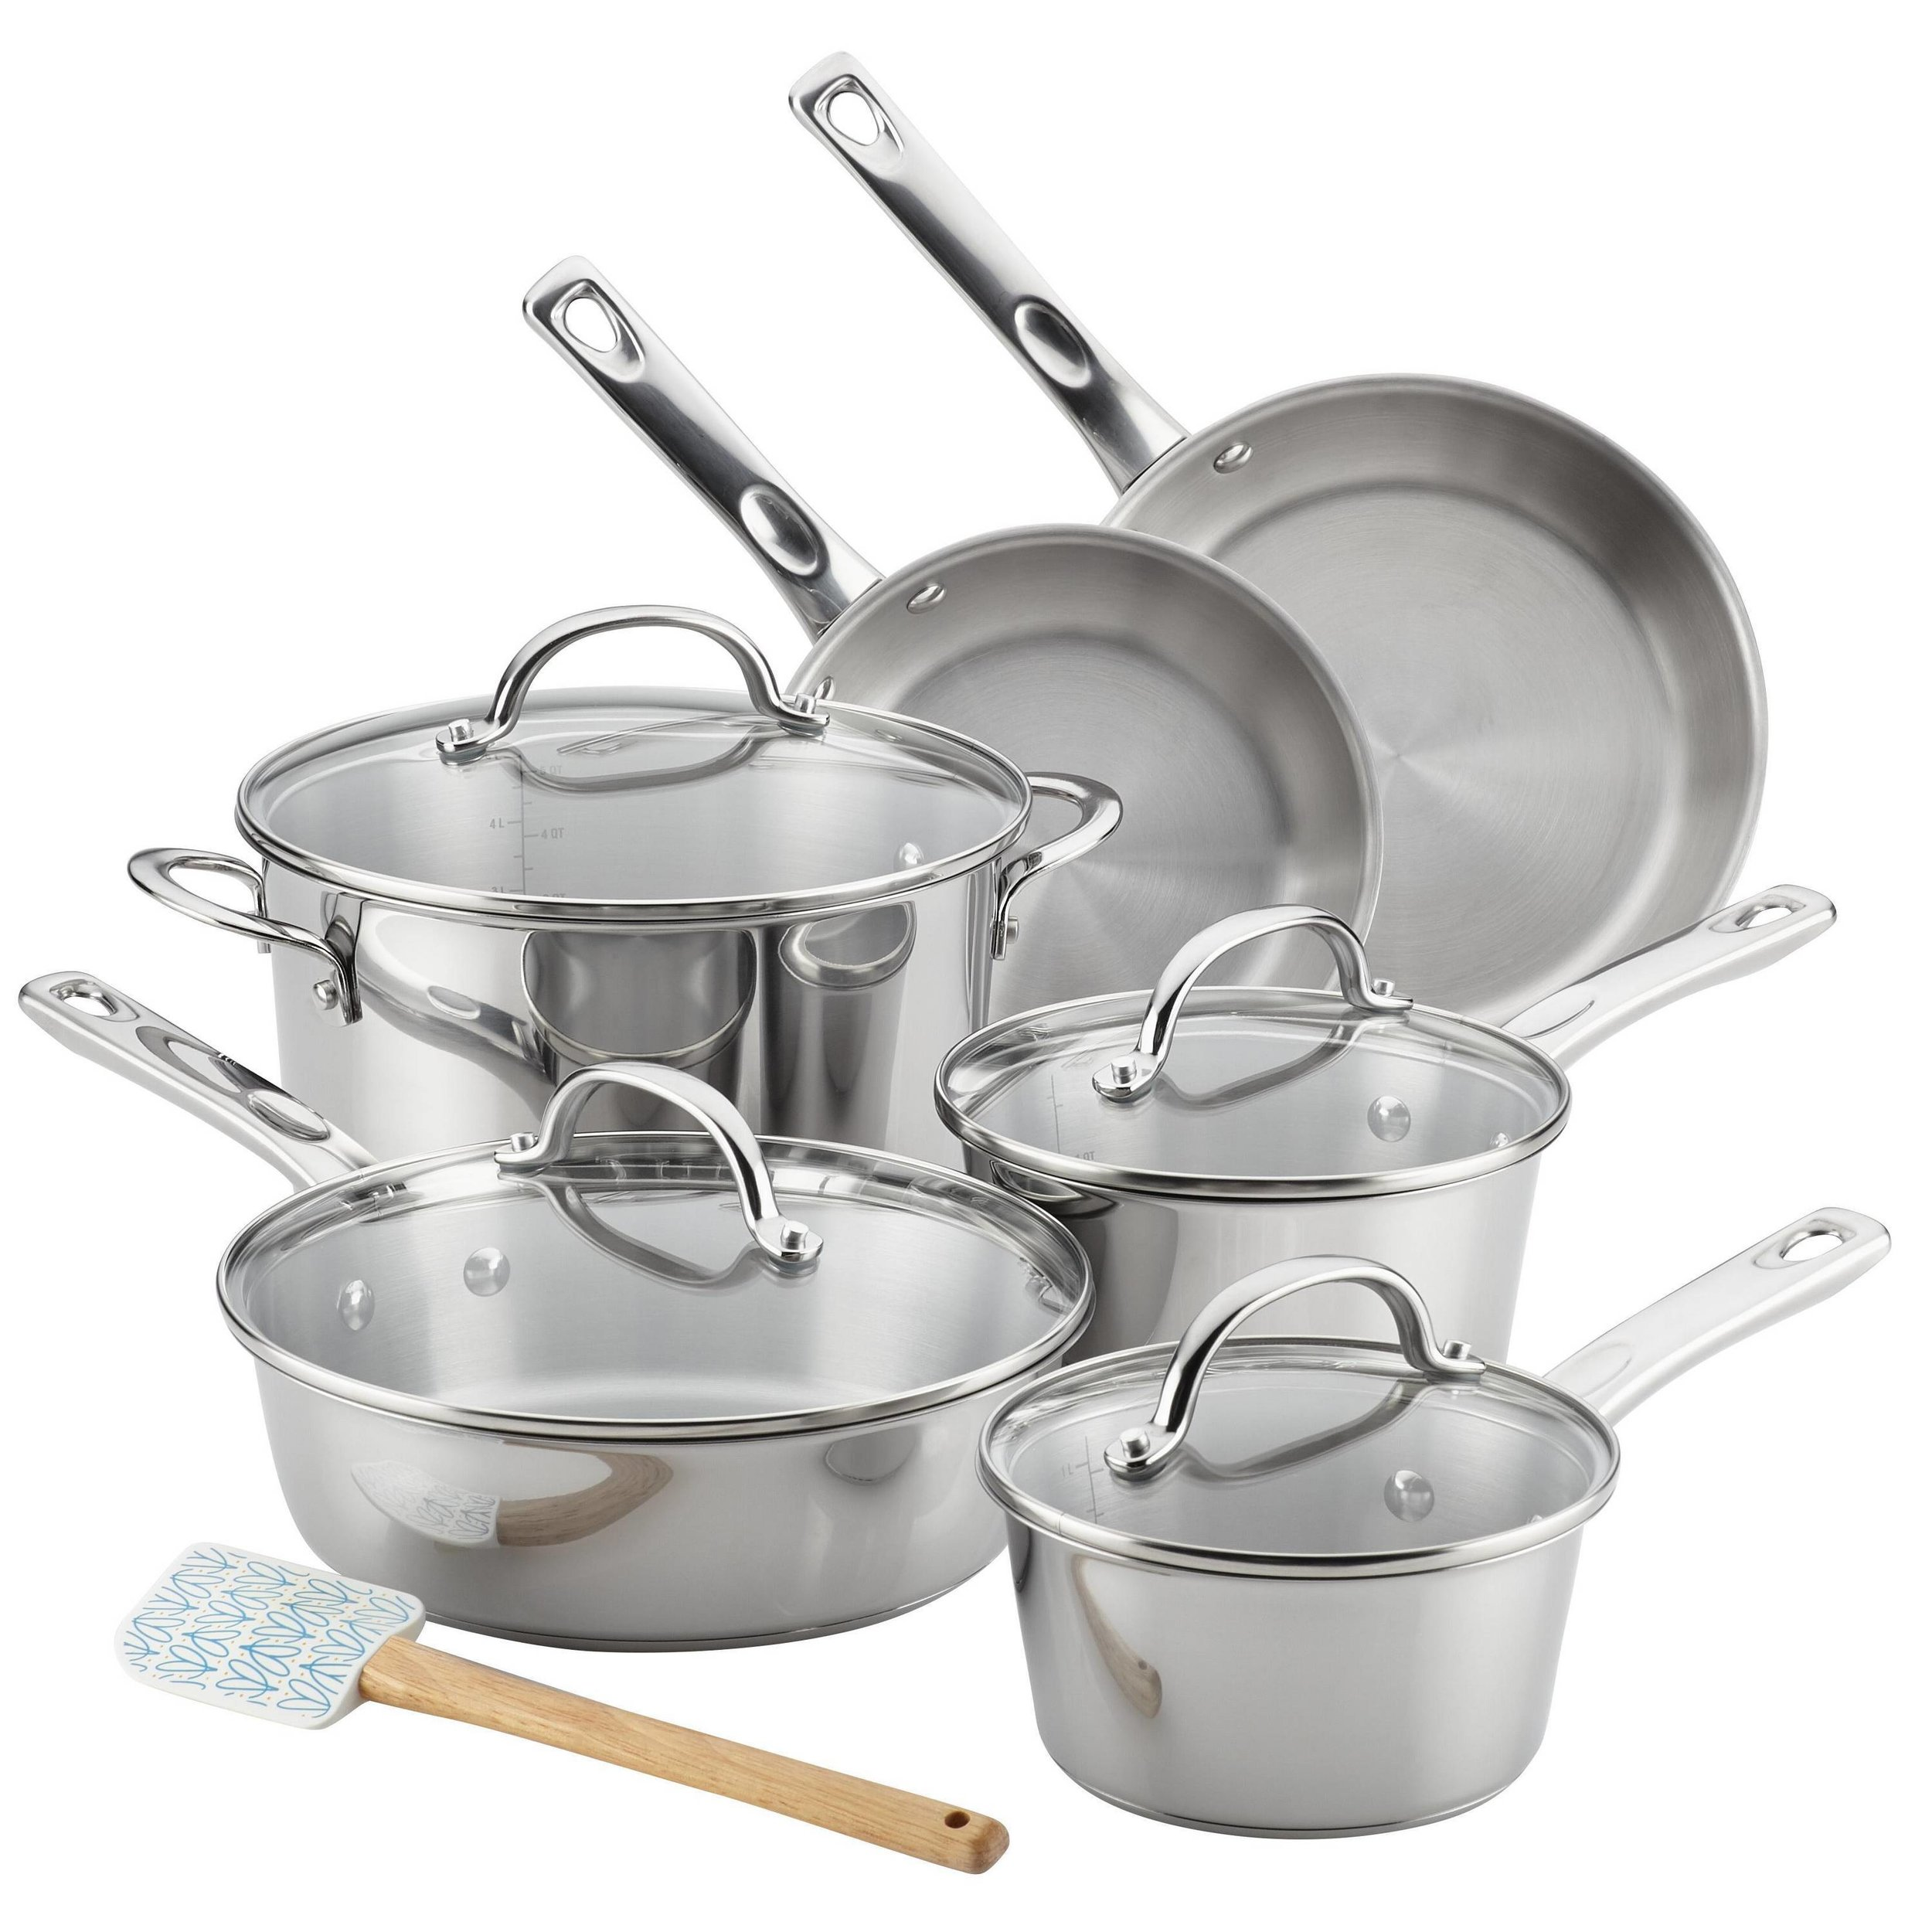 Ayesha Curry 11pc Stainless Steel Cookware